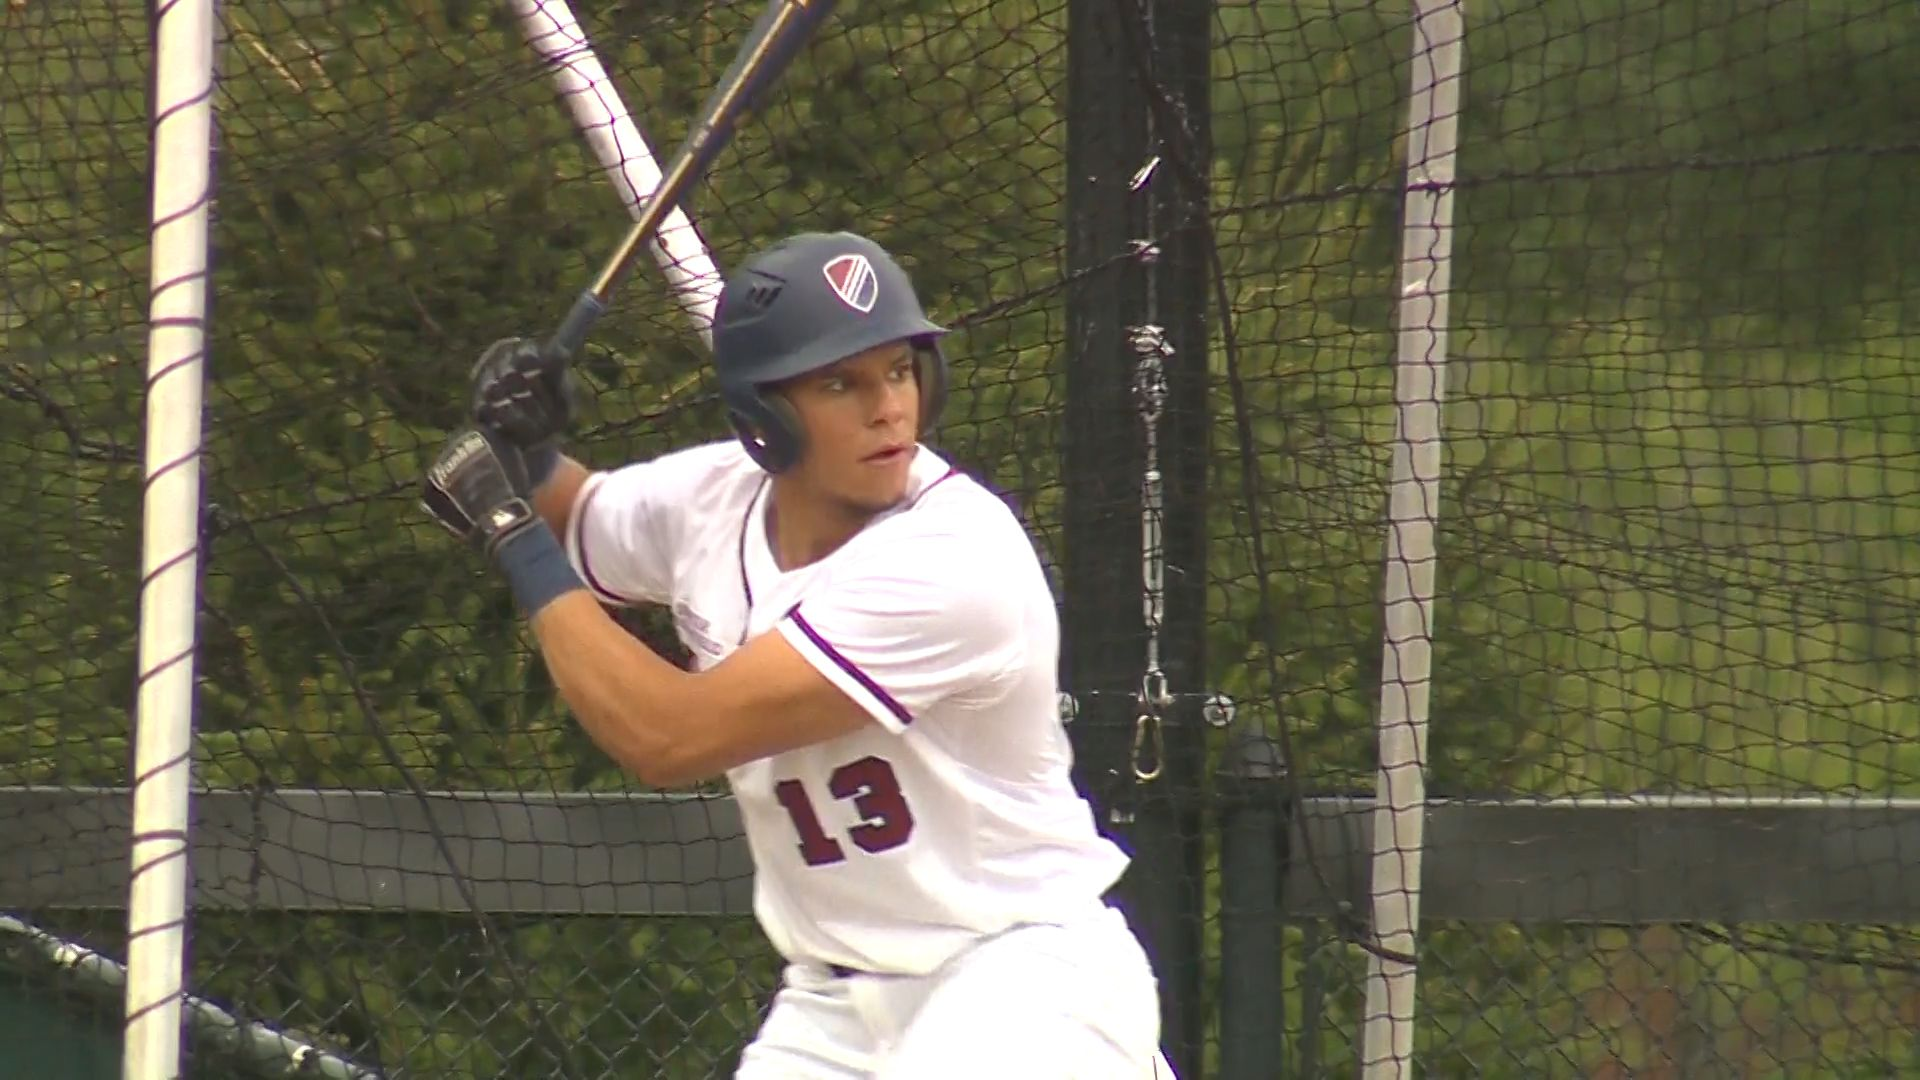 Meet Josh Baez, a 17-year-old from Massachusetts who is drawing dozens of big league scouts